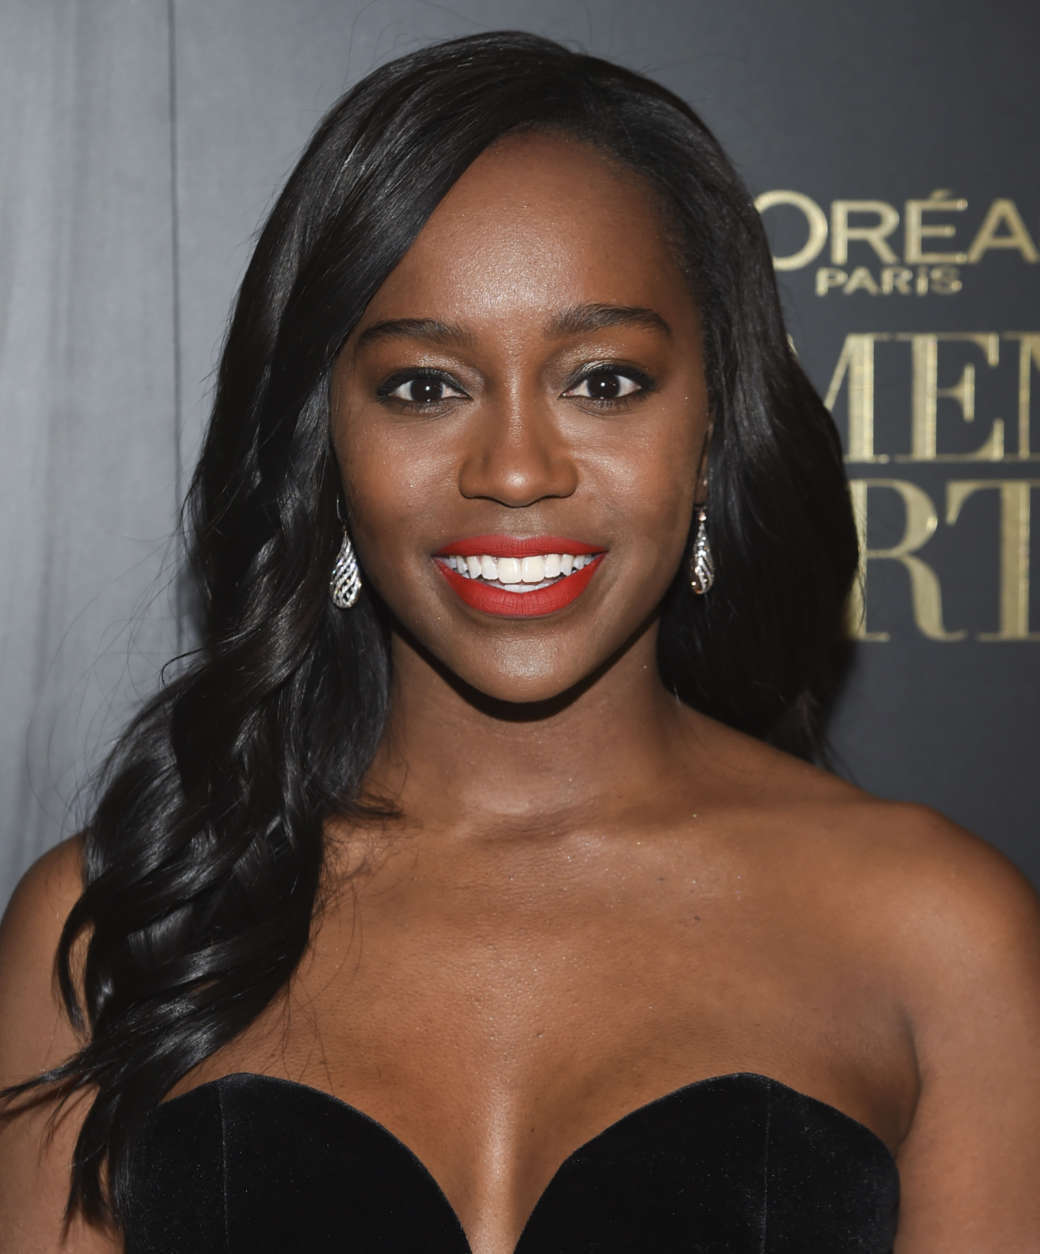 Actress Aja Naomi King attends the L'Oreal Women of Worth Awards at the Pierre Hotel on Wednesday, Dec. 6, 2017, in New York. (Photo by Evan Agostini/Invision/AP)